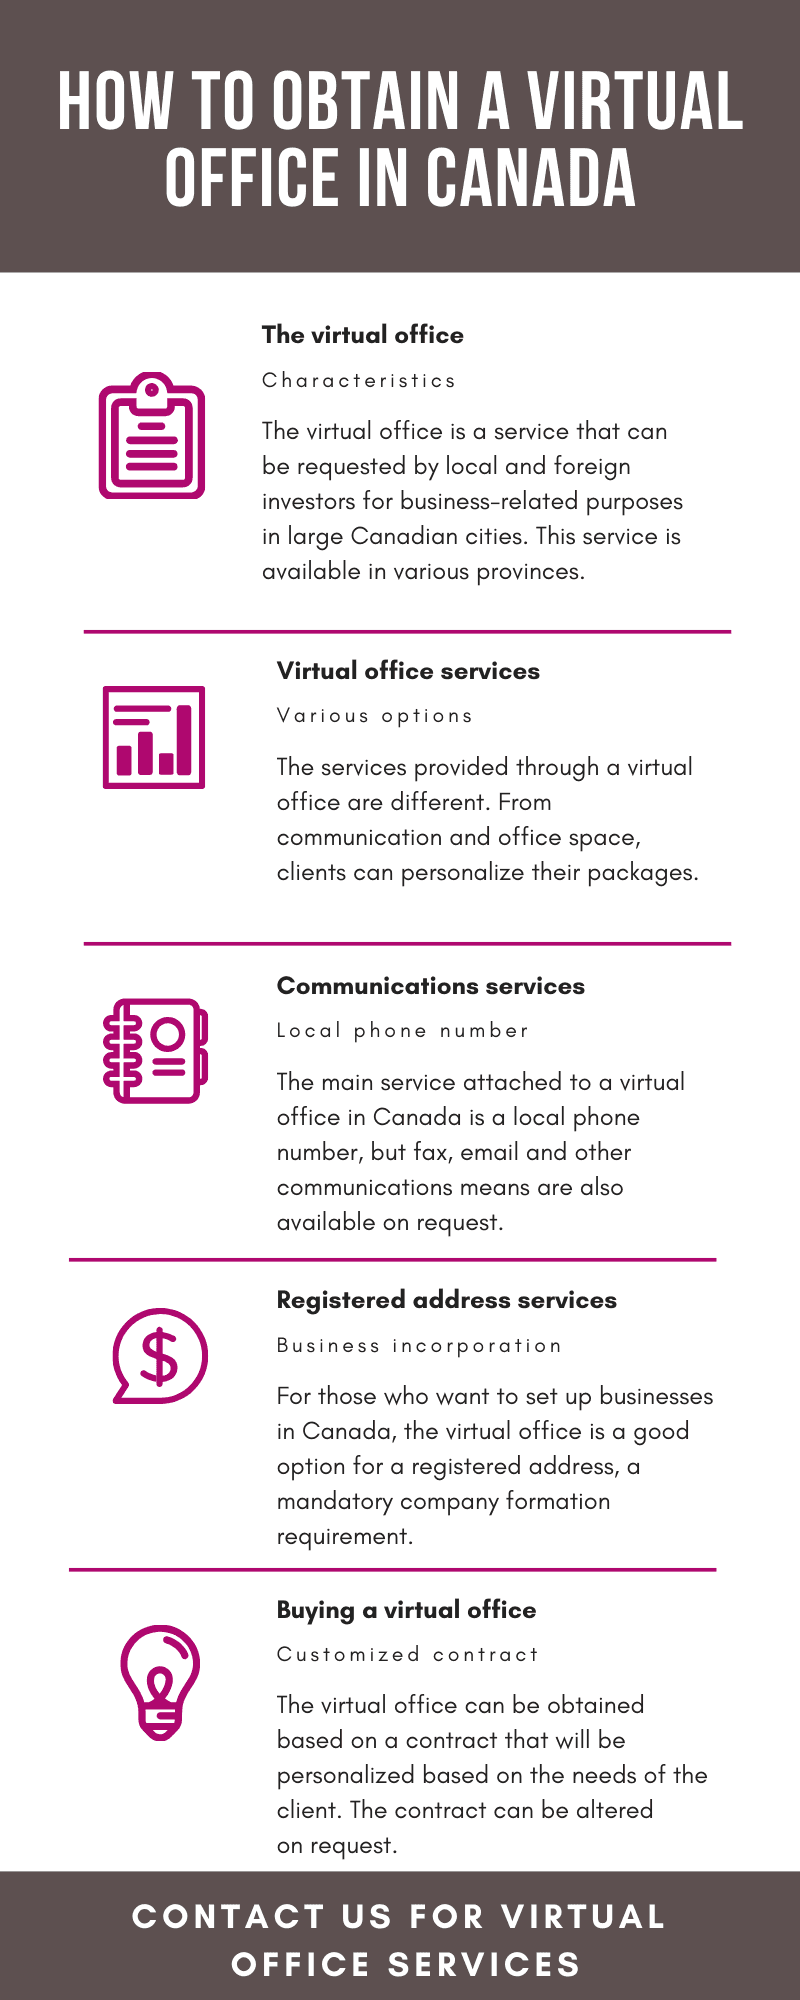 How to obtain a virtual office in Canada